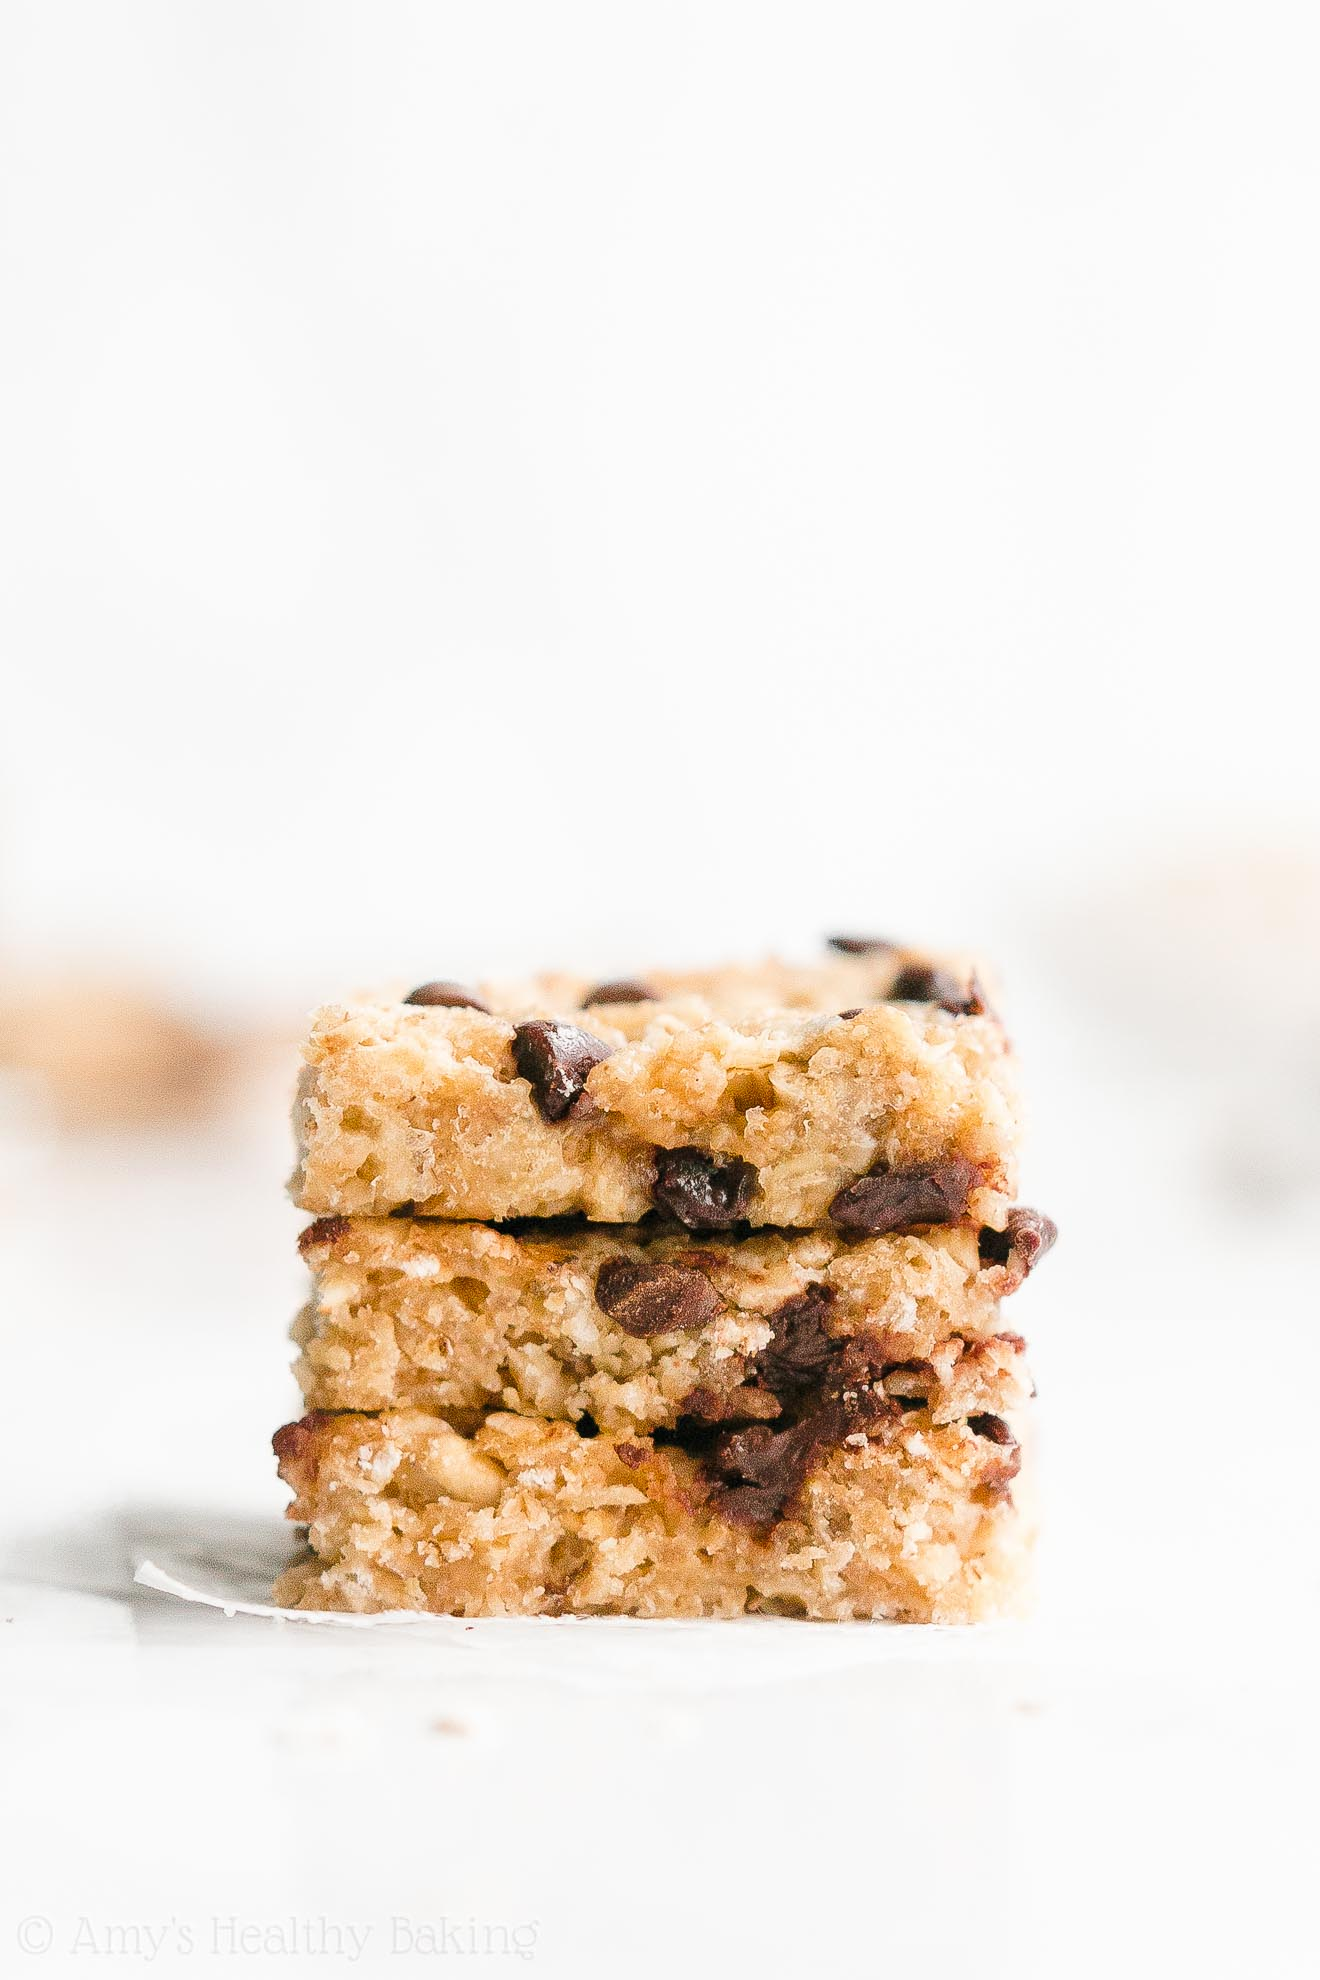 Easy Healthy Low Calorie Low Sugar Chocolate Chip Peanut Butter Granola Bars